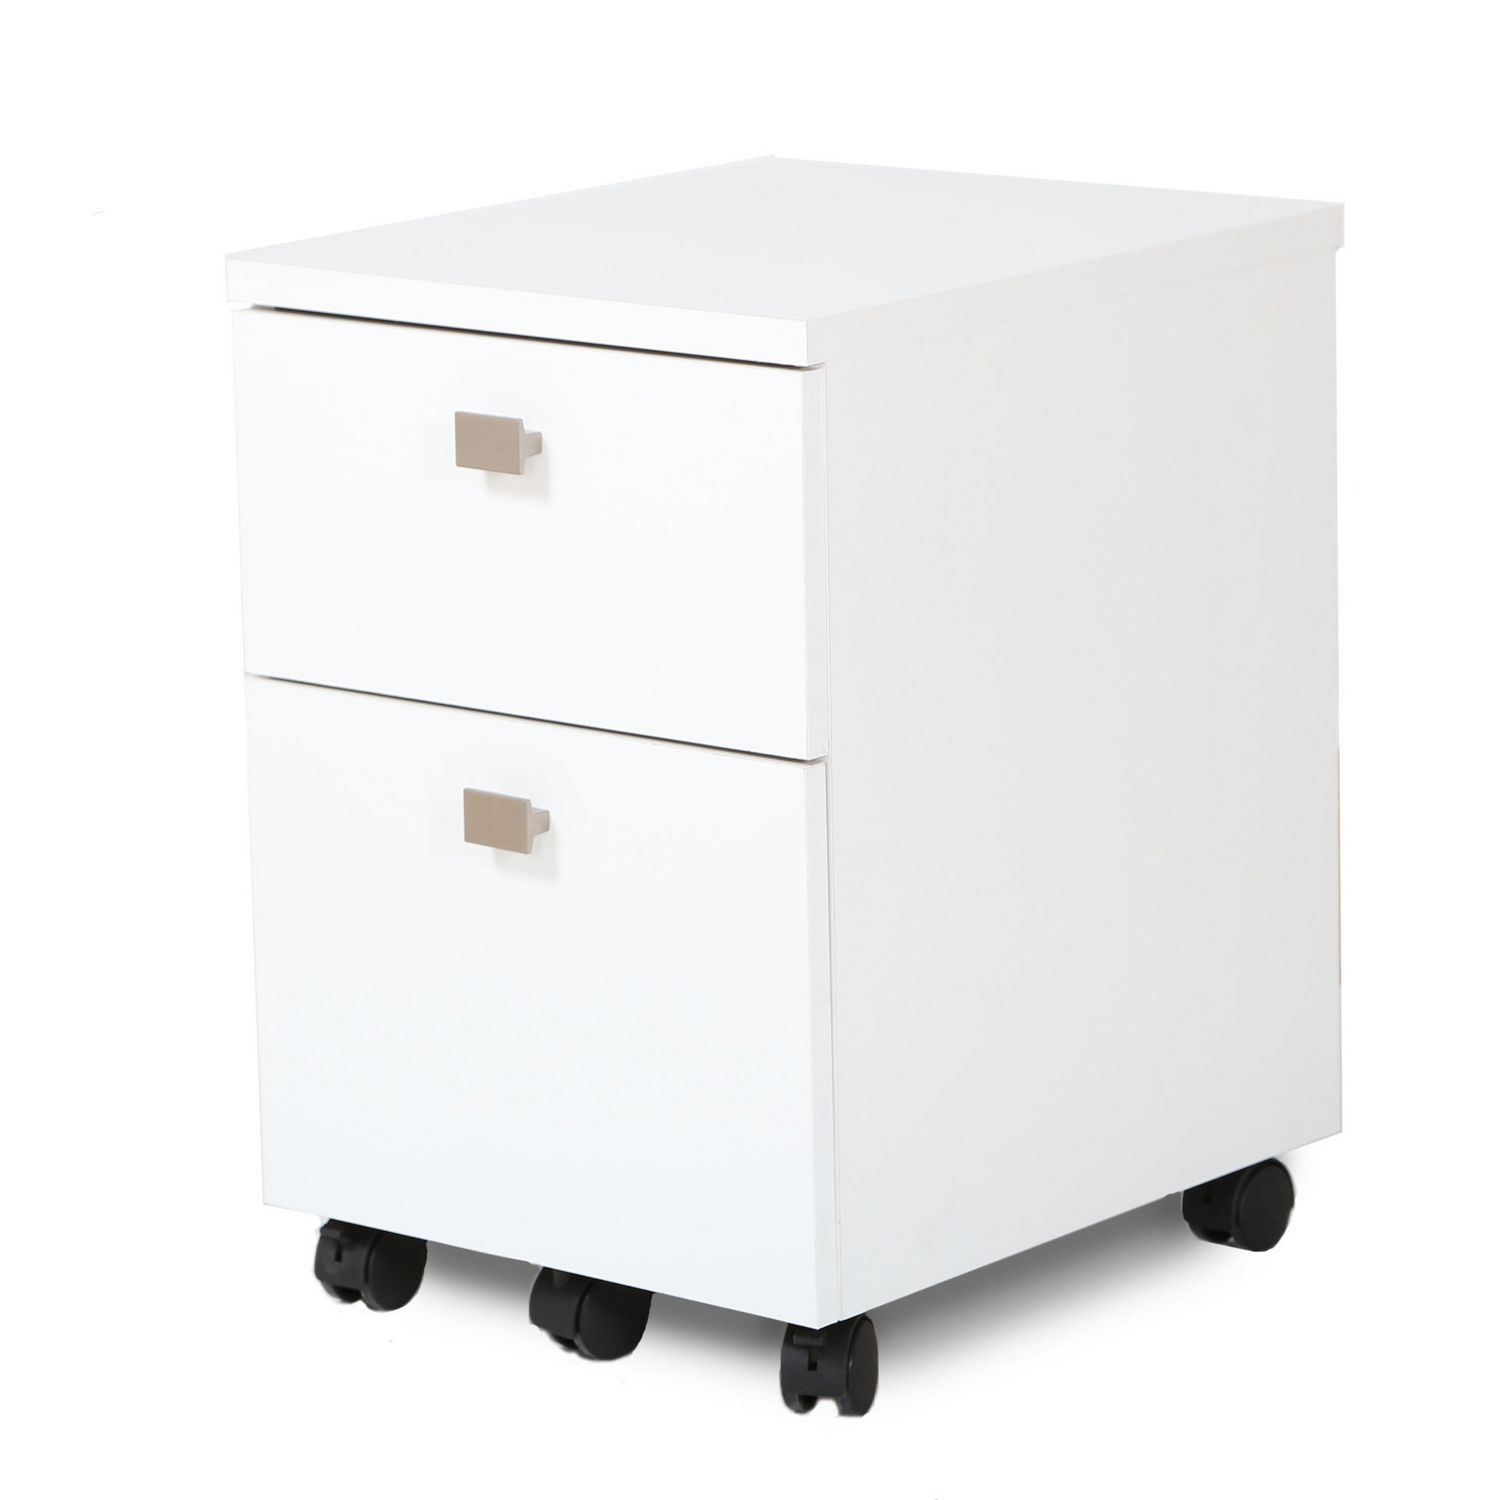 South Shore Interface 2-Drawer Mobile File Cabinet | Walmart Canada